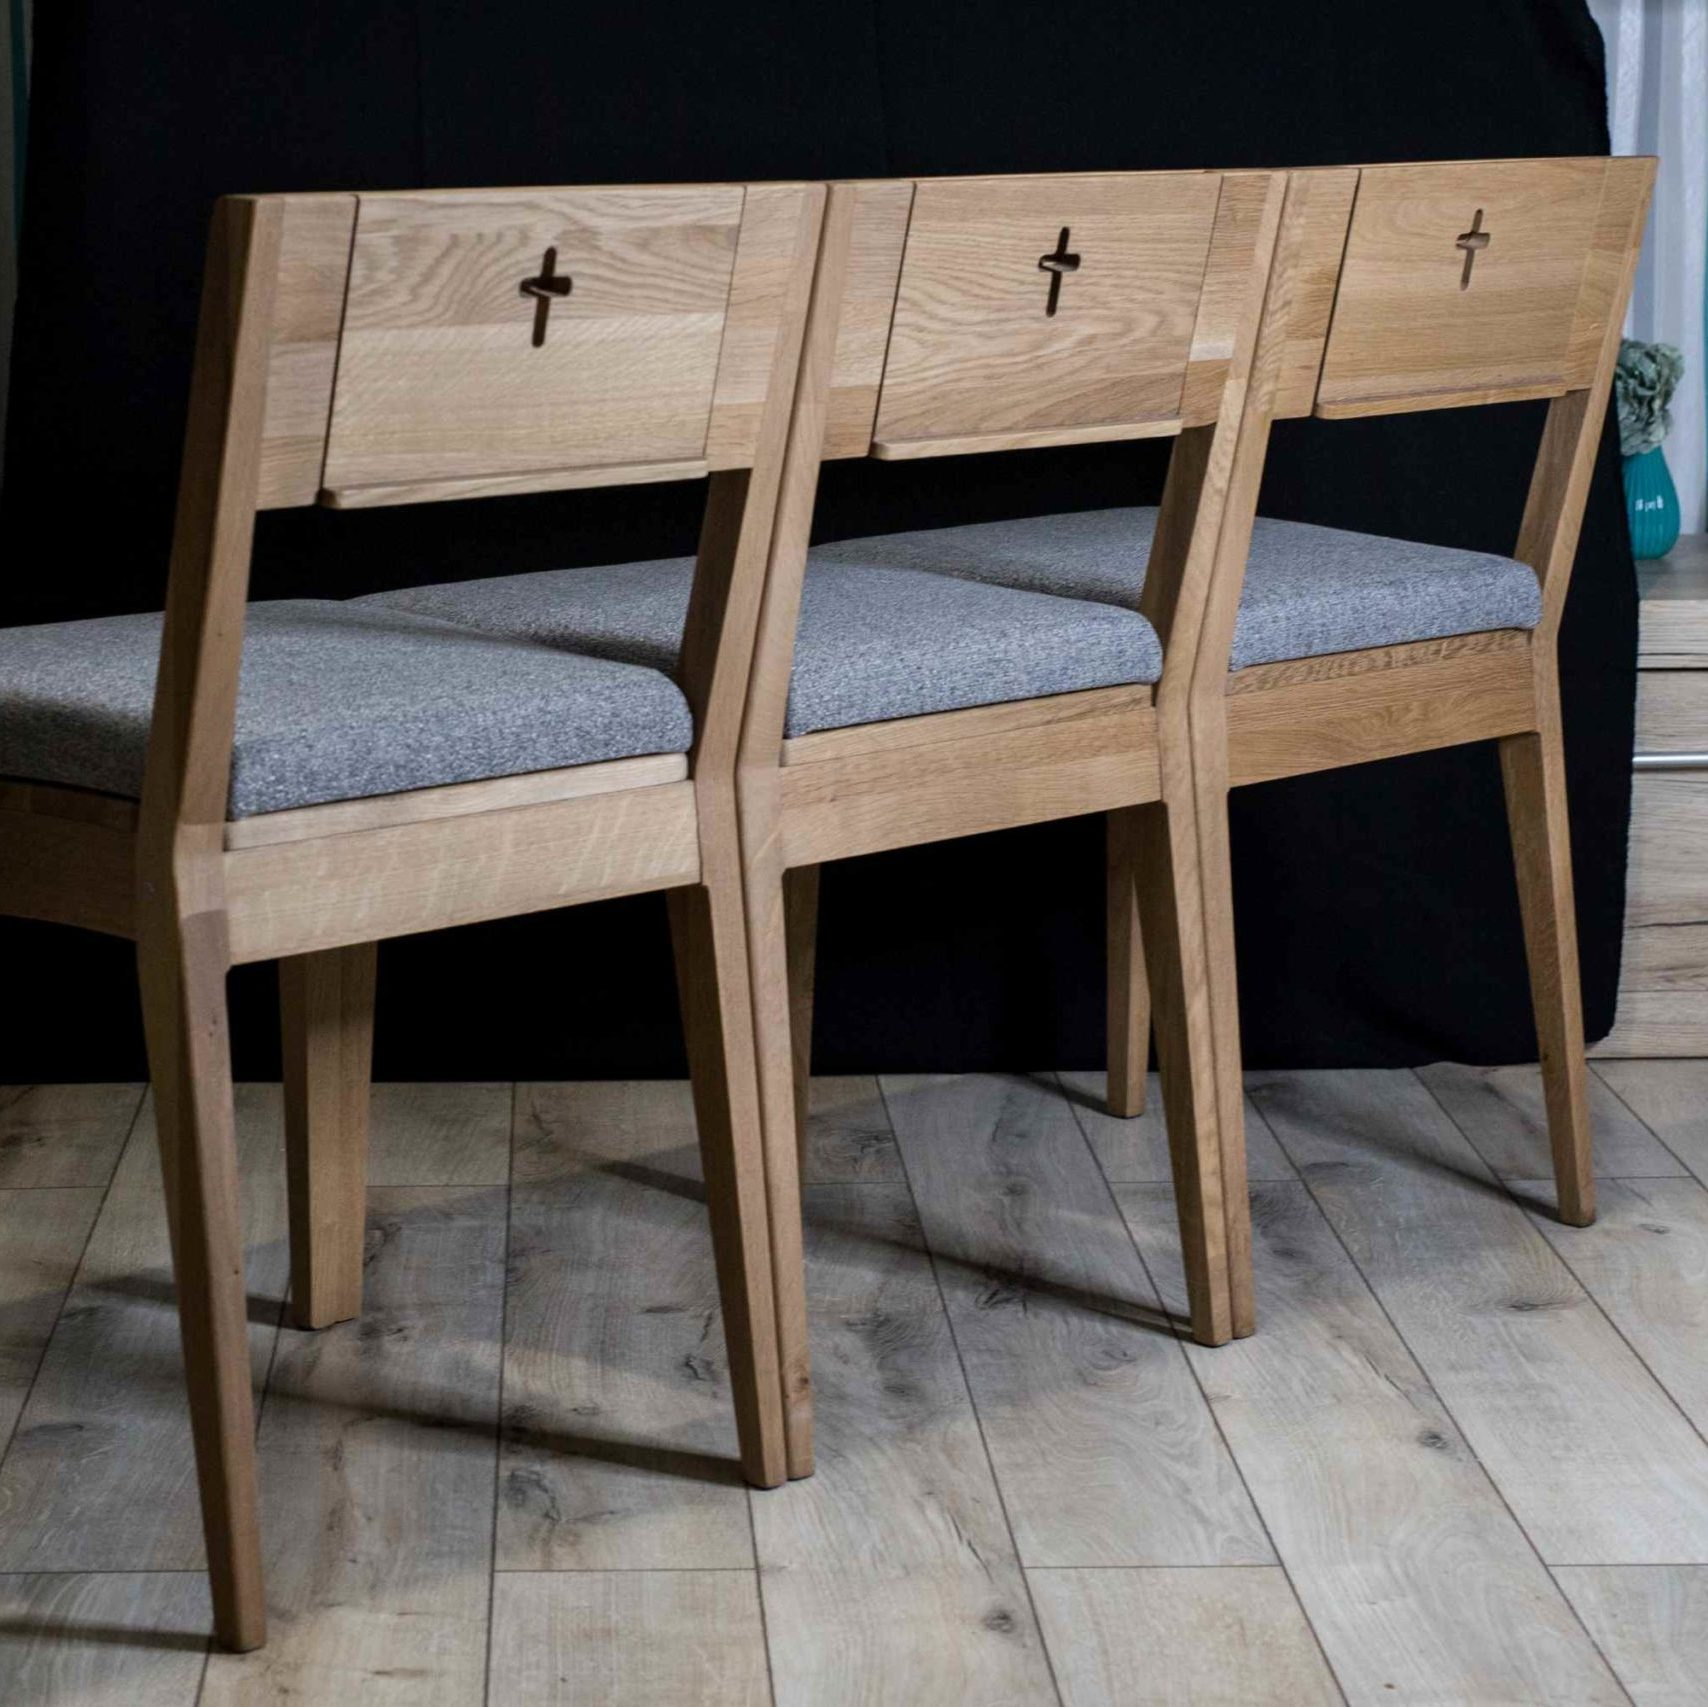 ZOE church chair linked into the wooden pew